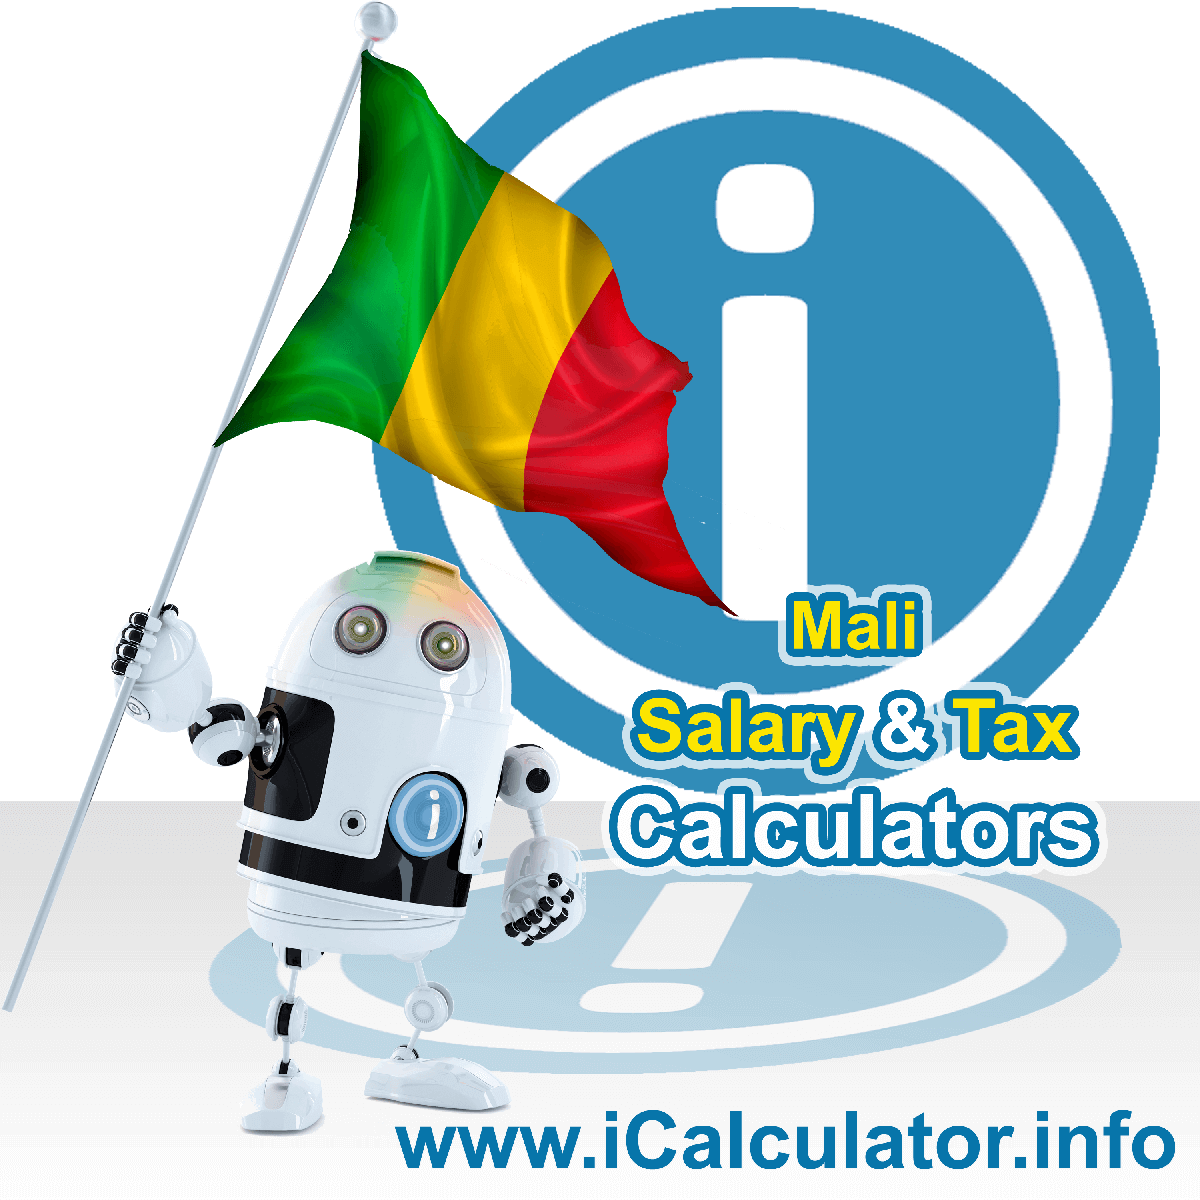 Mali Tax Calculator. This image shows the Mali flag and information relating to the tax formula for the Mali Salary Calculator